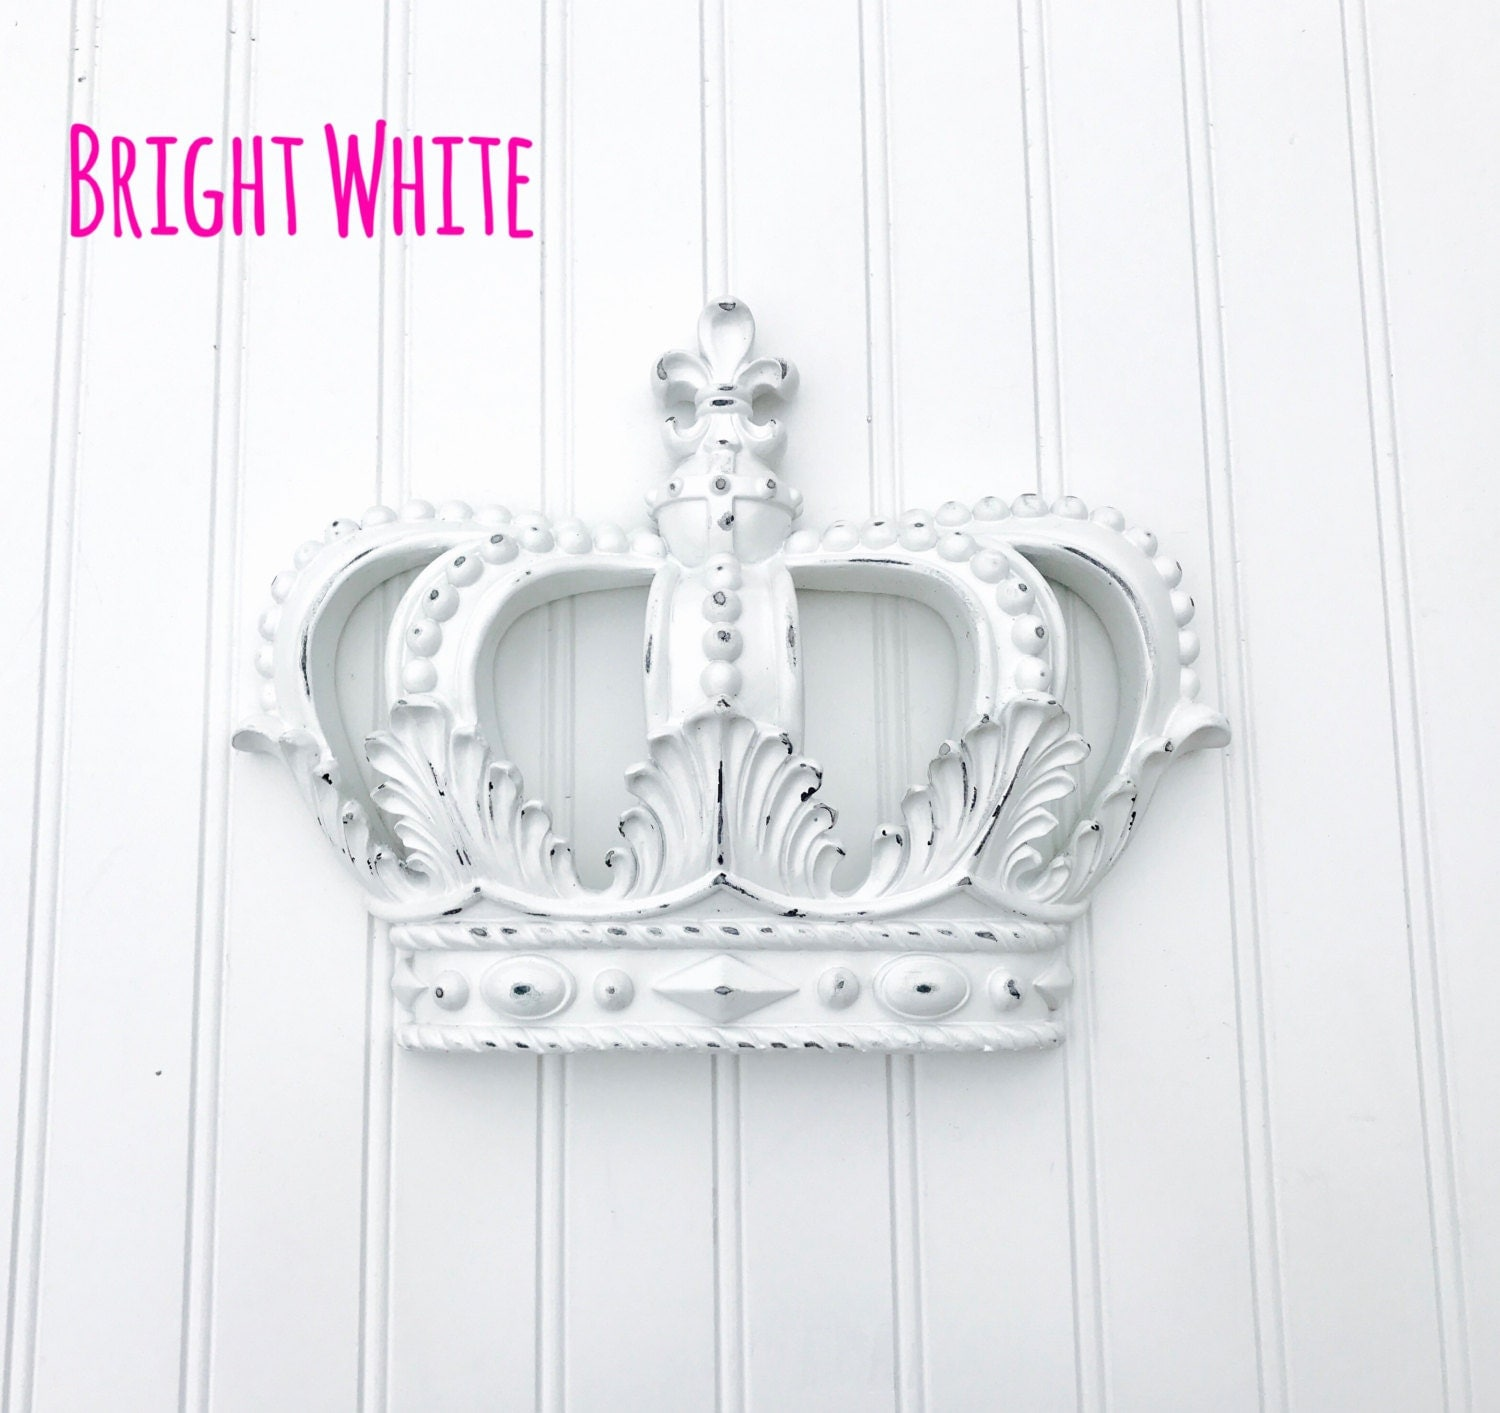 Gold princess crown queen crown decor nursery decor for Queen bathroom decor